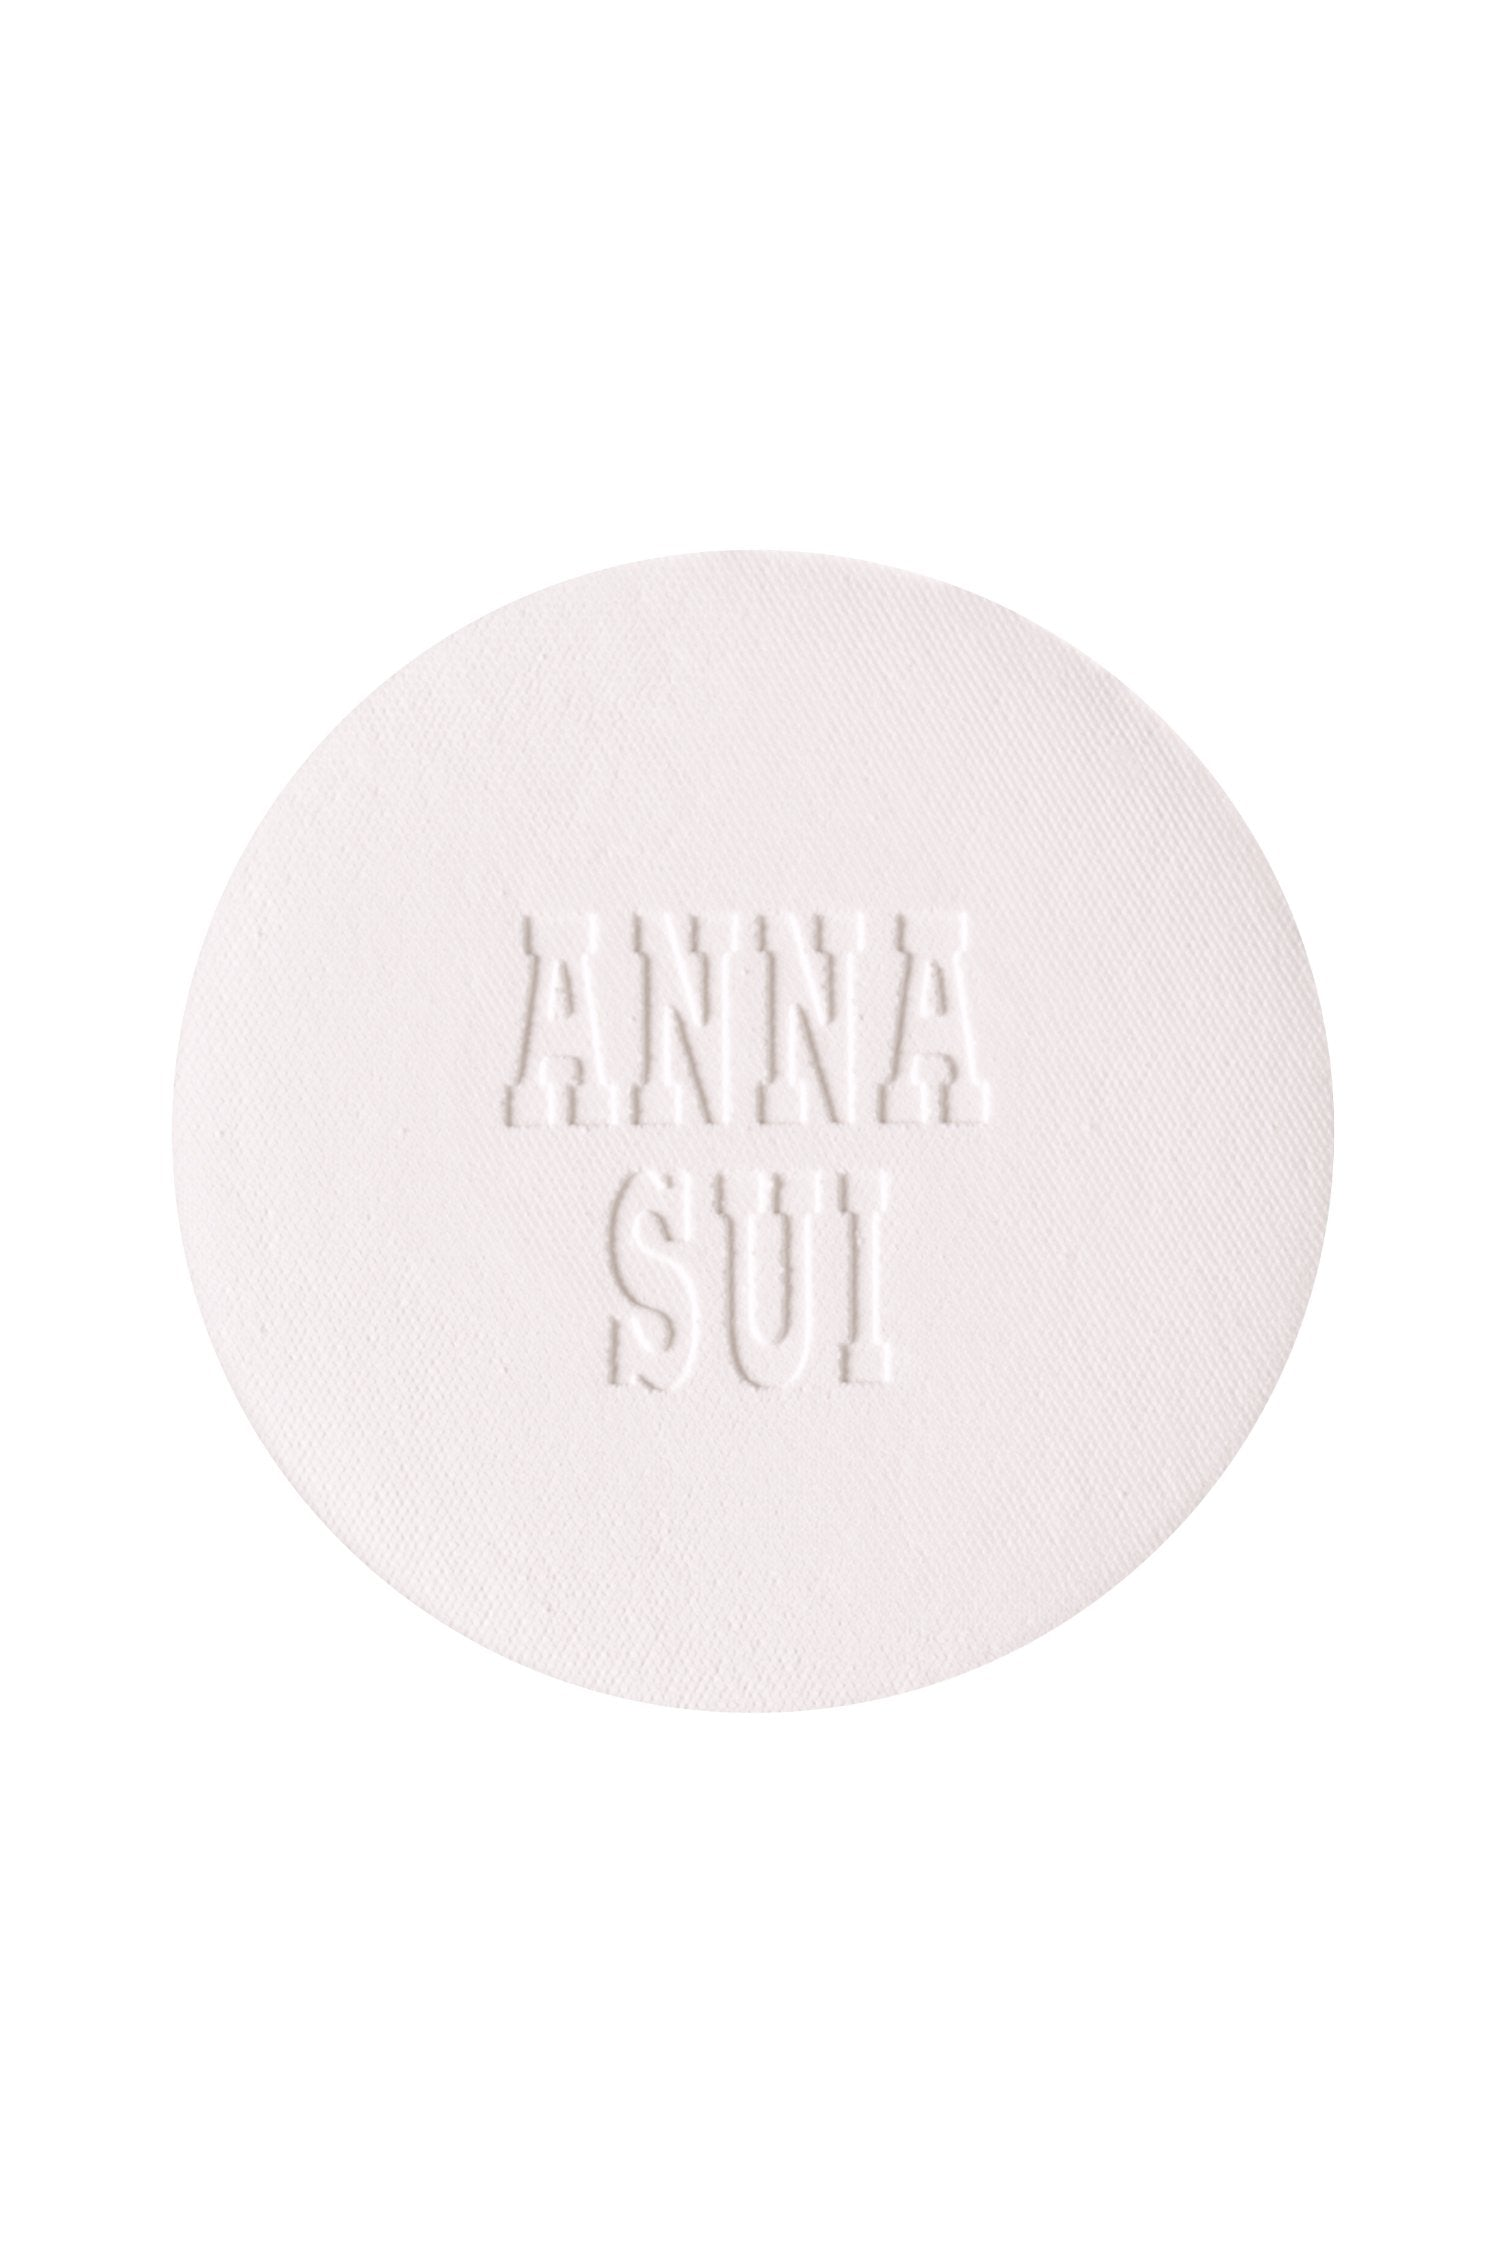 New: Brightening Powder - Anna Sui